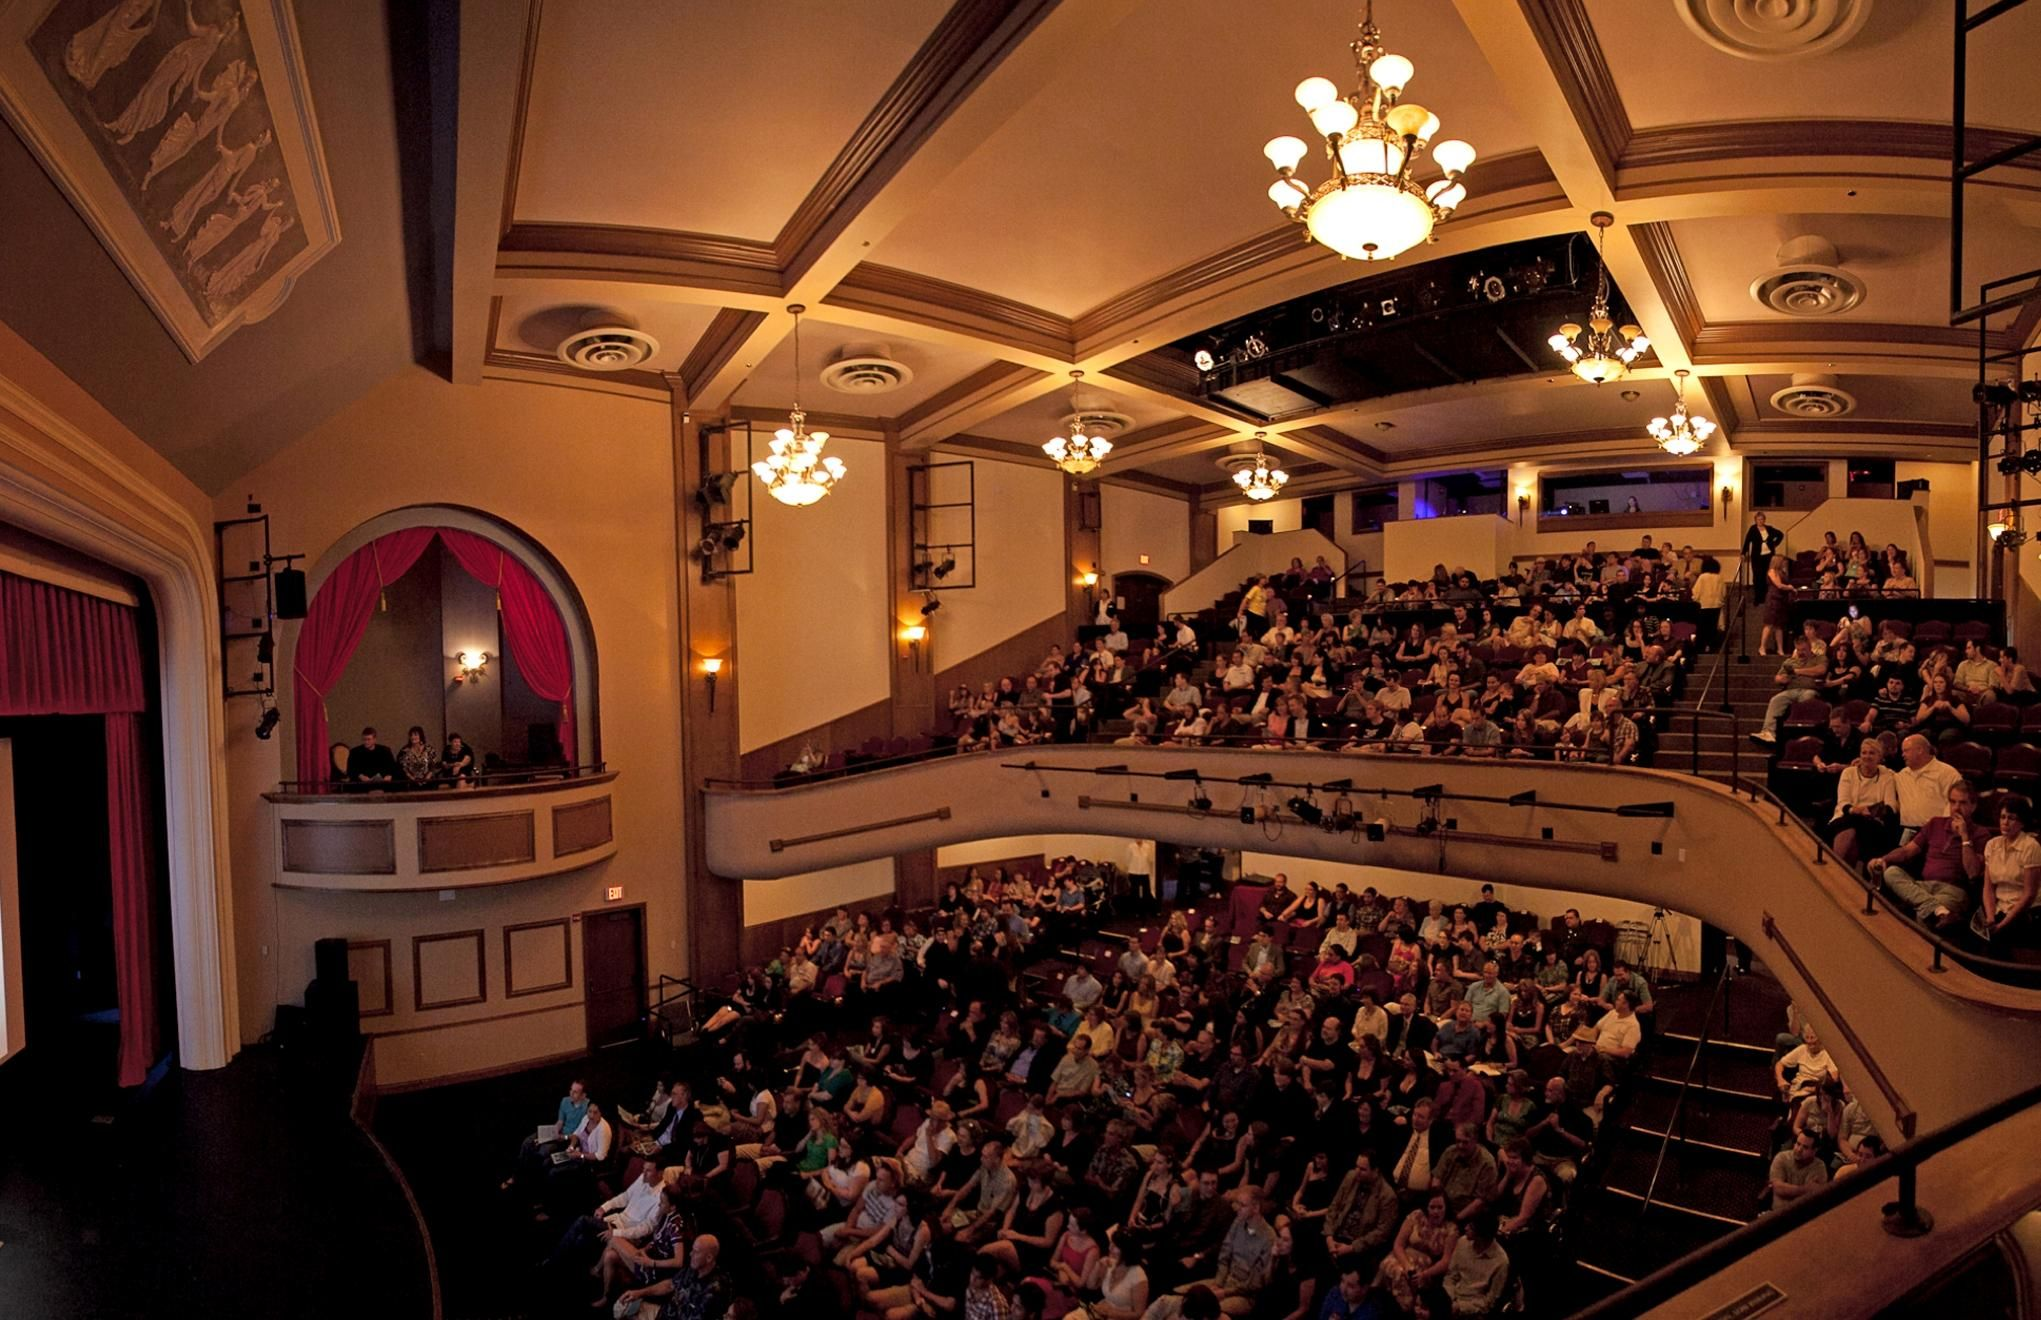 Athens Theatre (DeLand, FL): Address, Phone Number, Theater Reviews ...